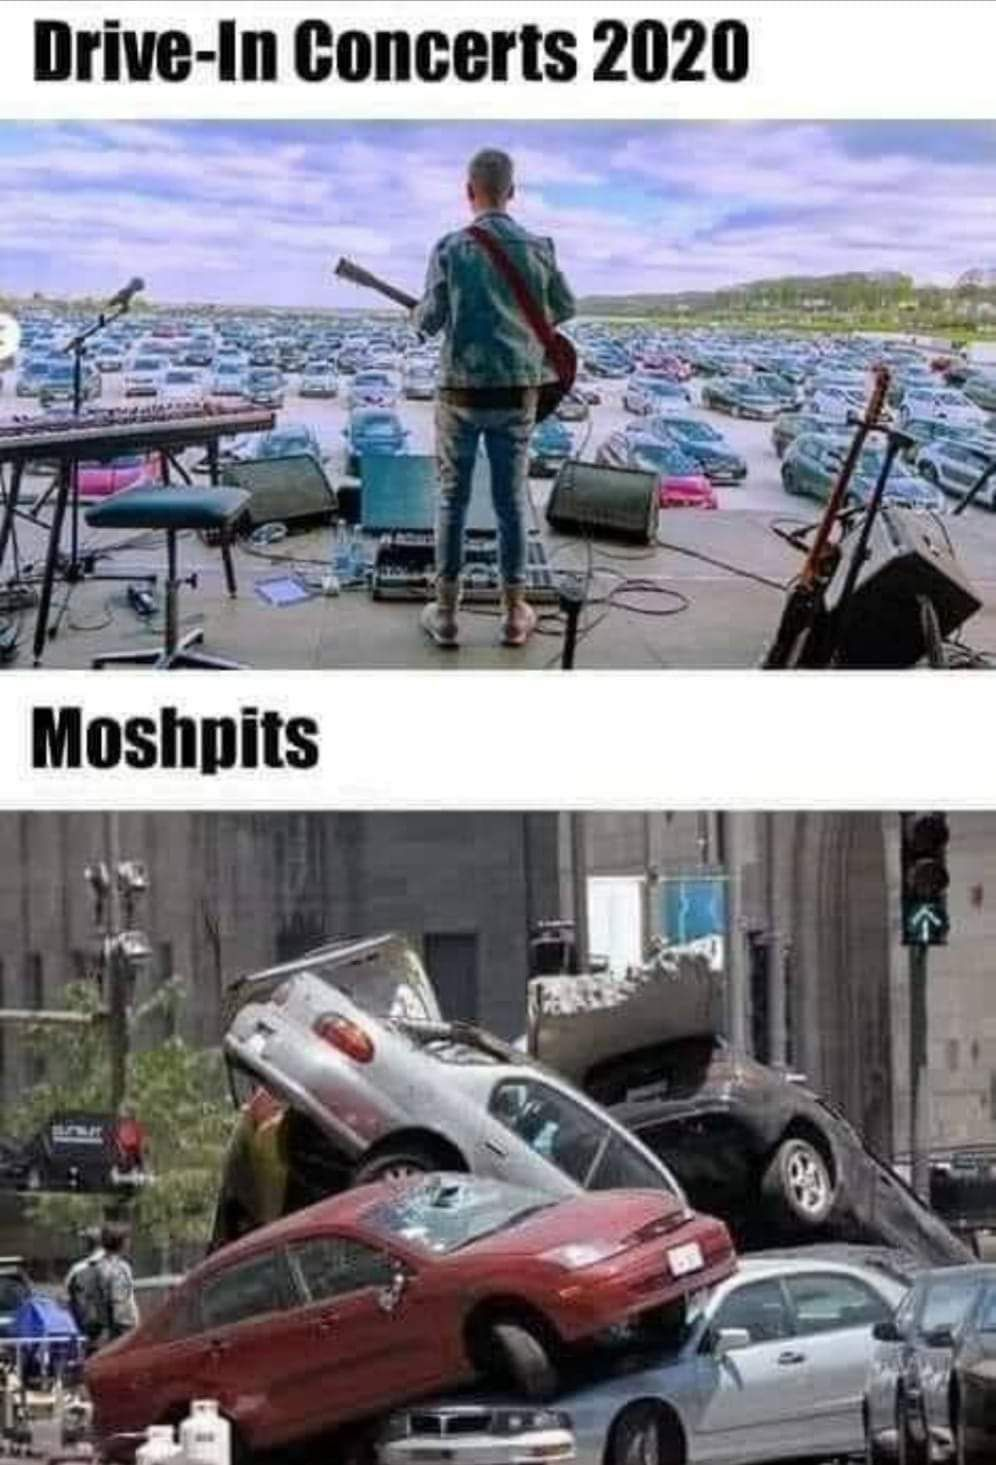 This is why moshpits in drive-in concerts don't work.